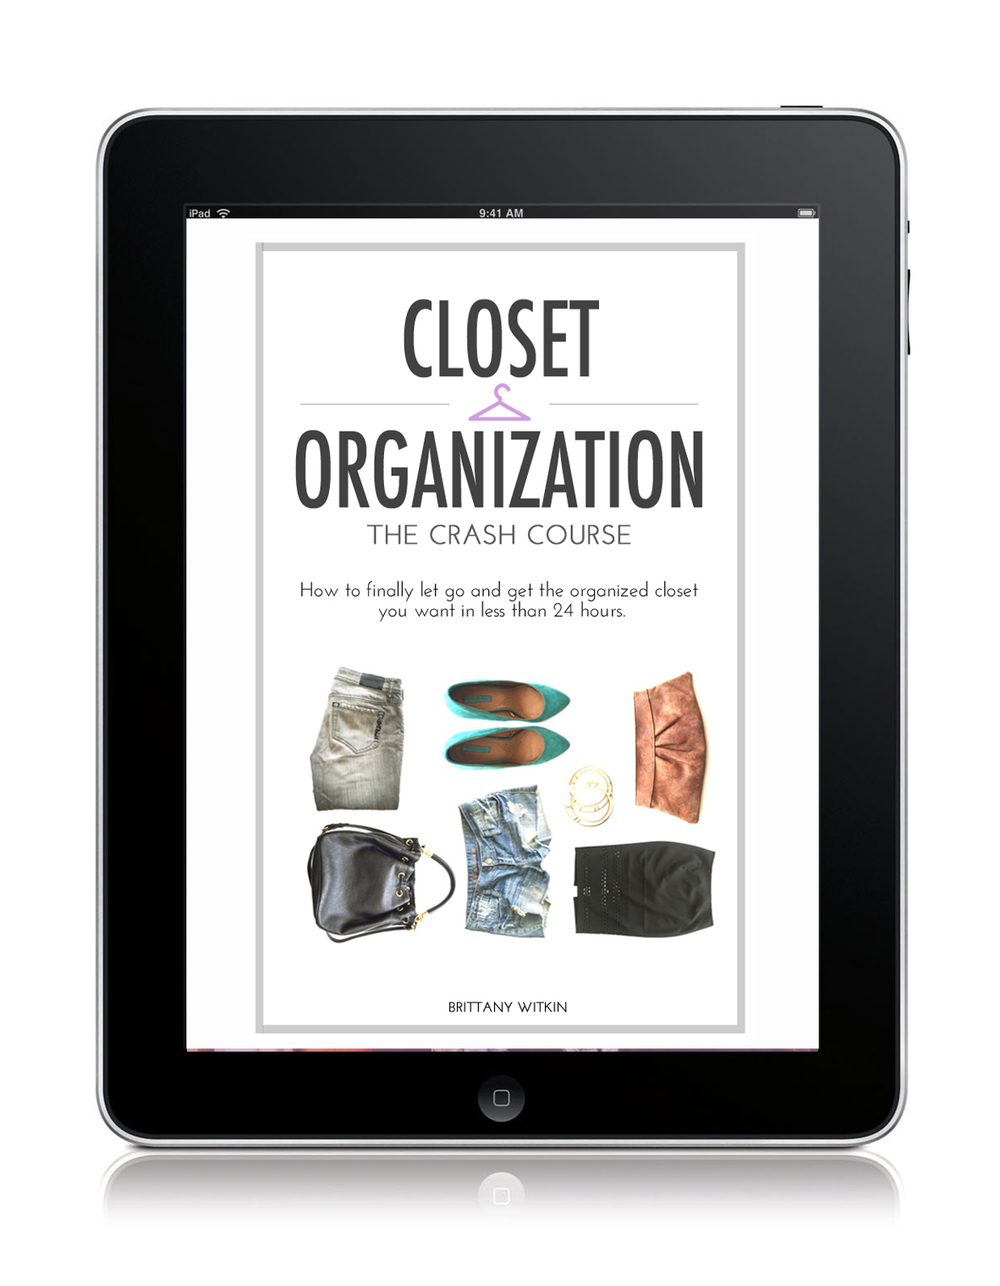 ipad image for kindle book.jpg